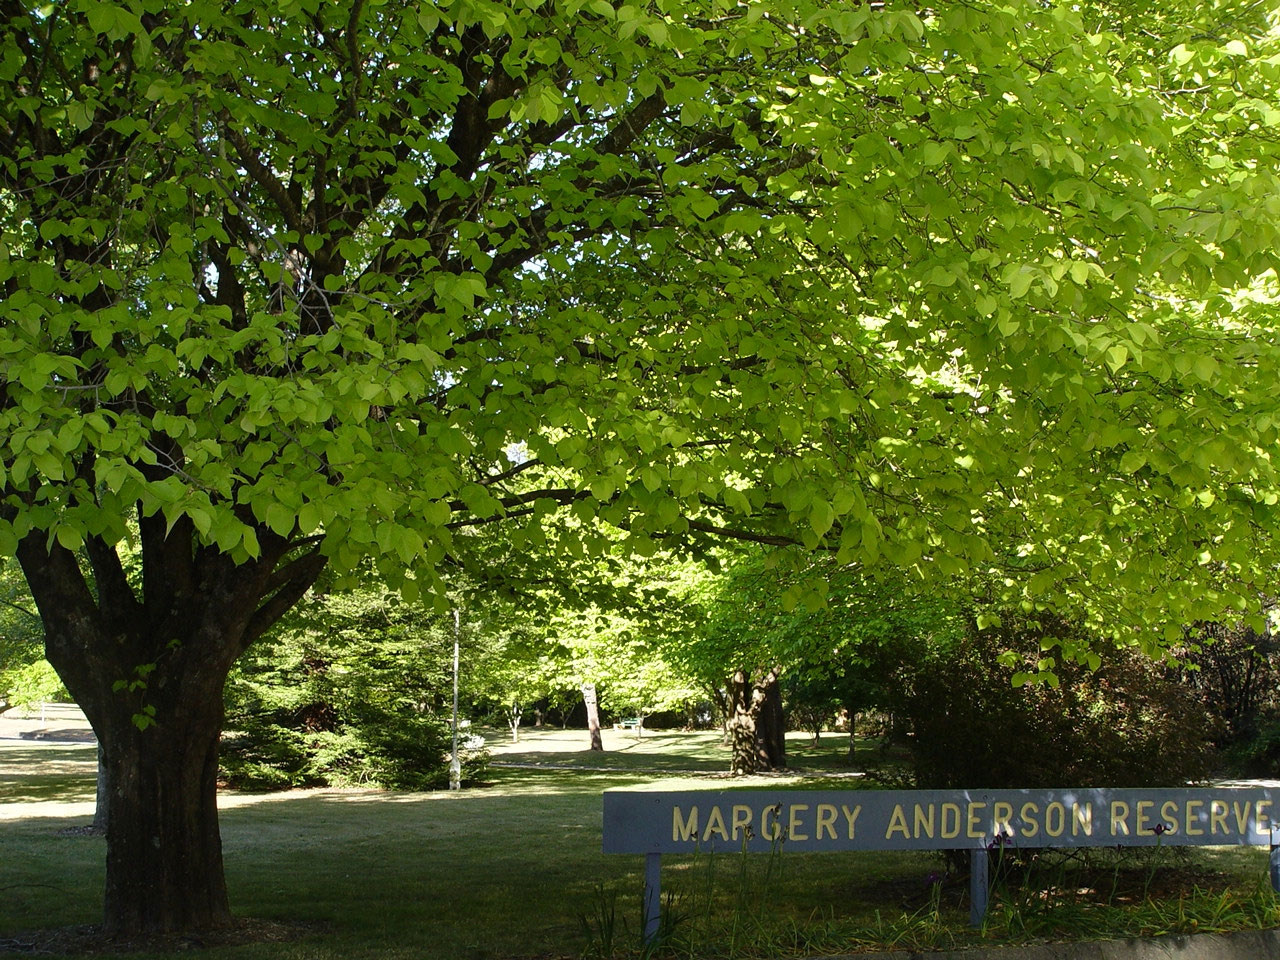 Margery Anderson Reserve